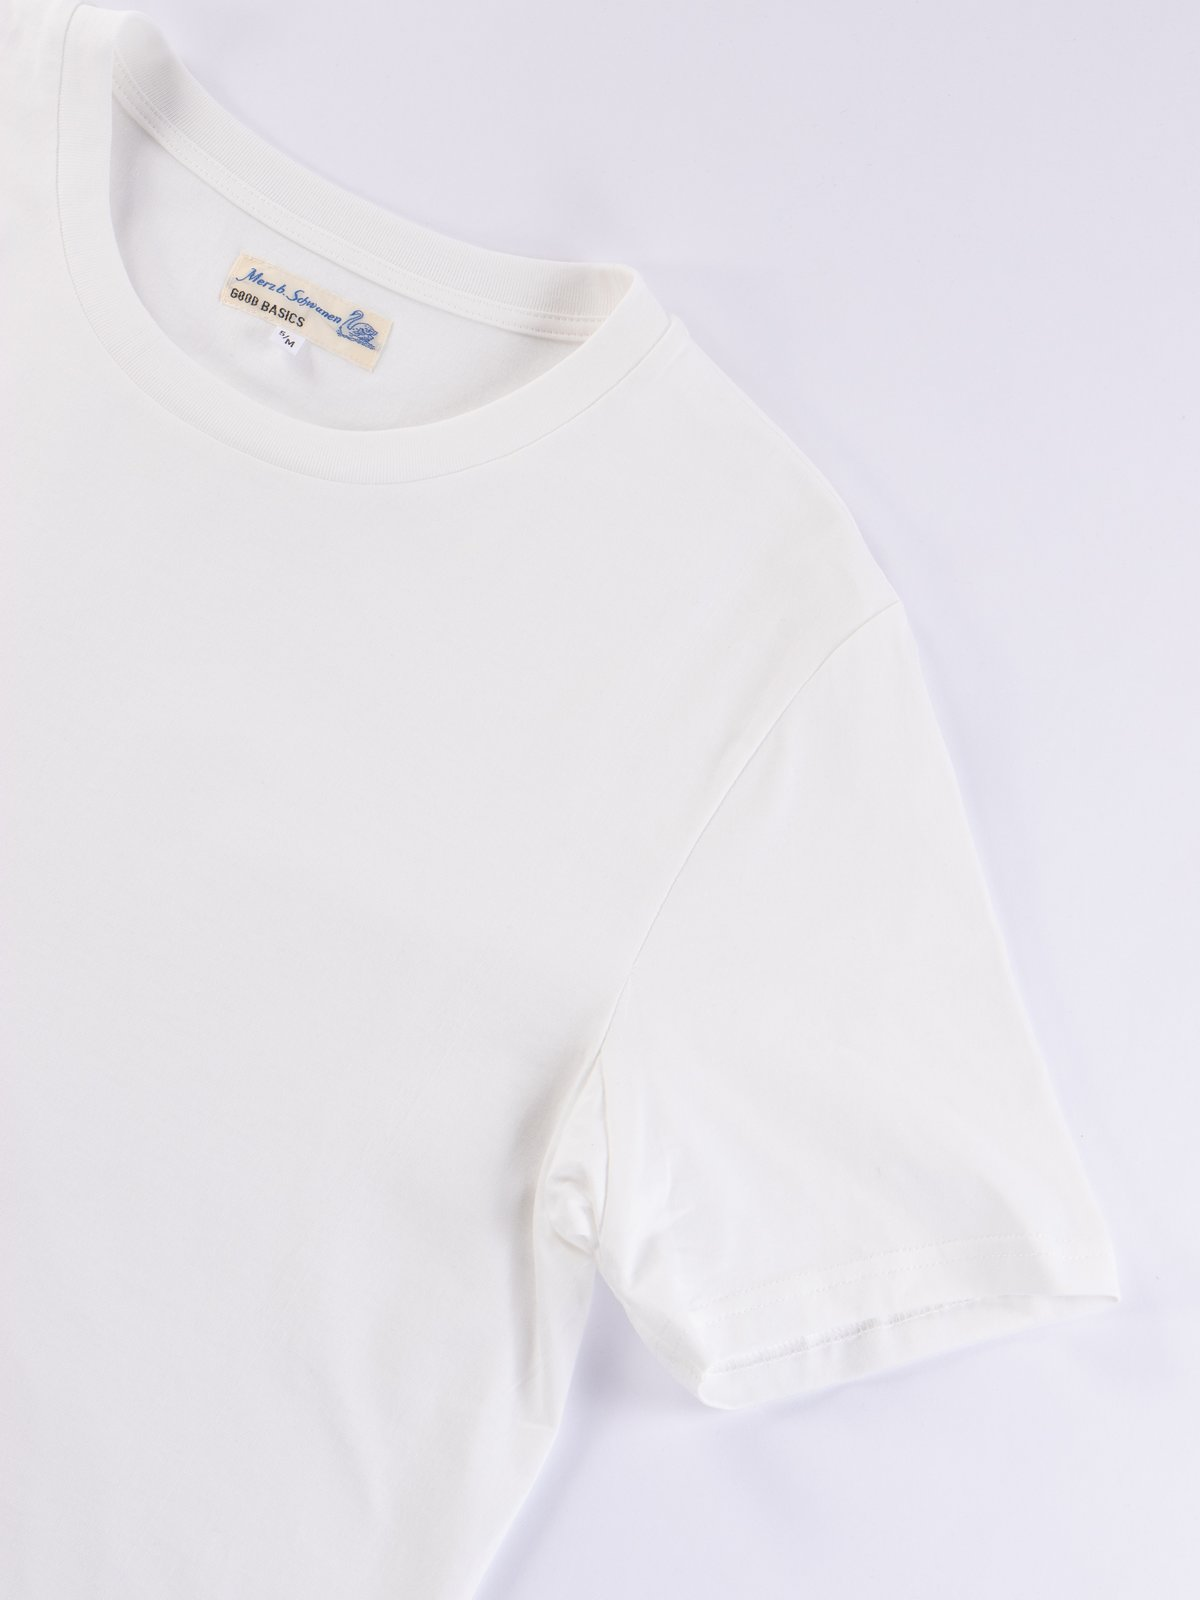 White Good Basics CT01 Crew Neck Tee - Image 4